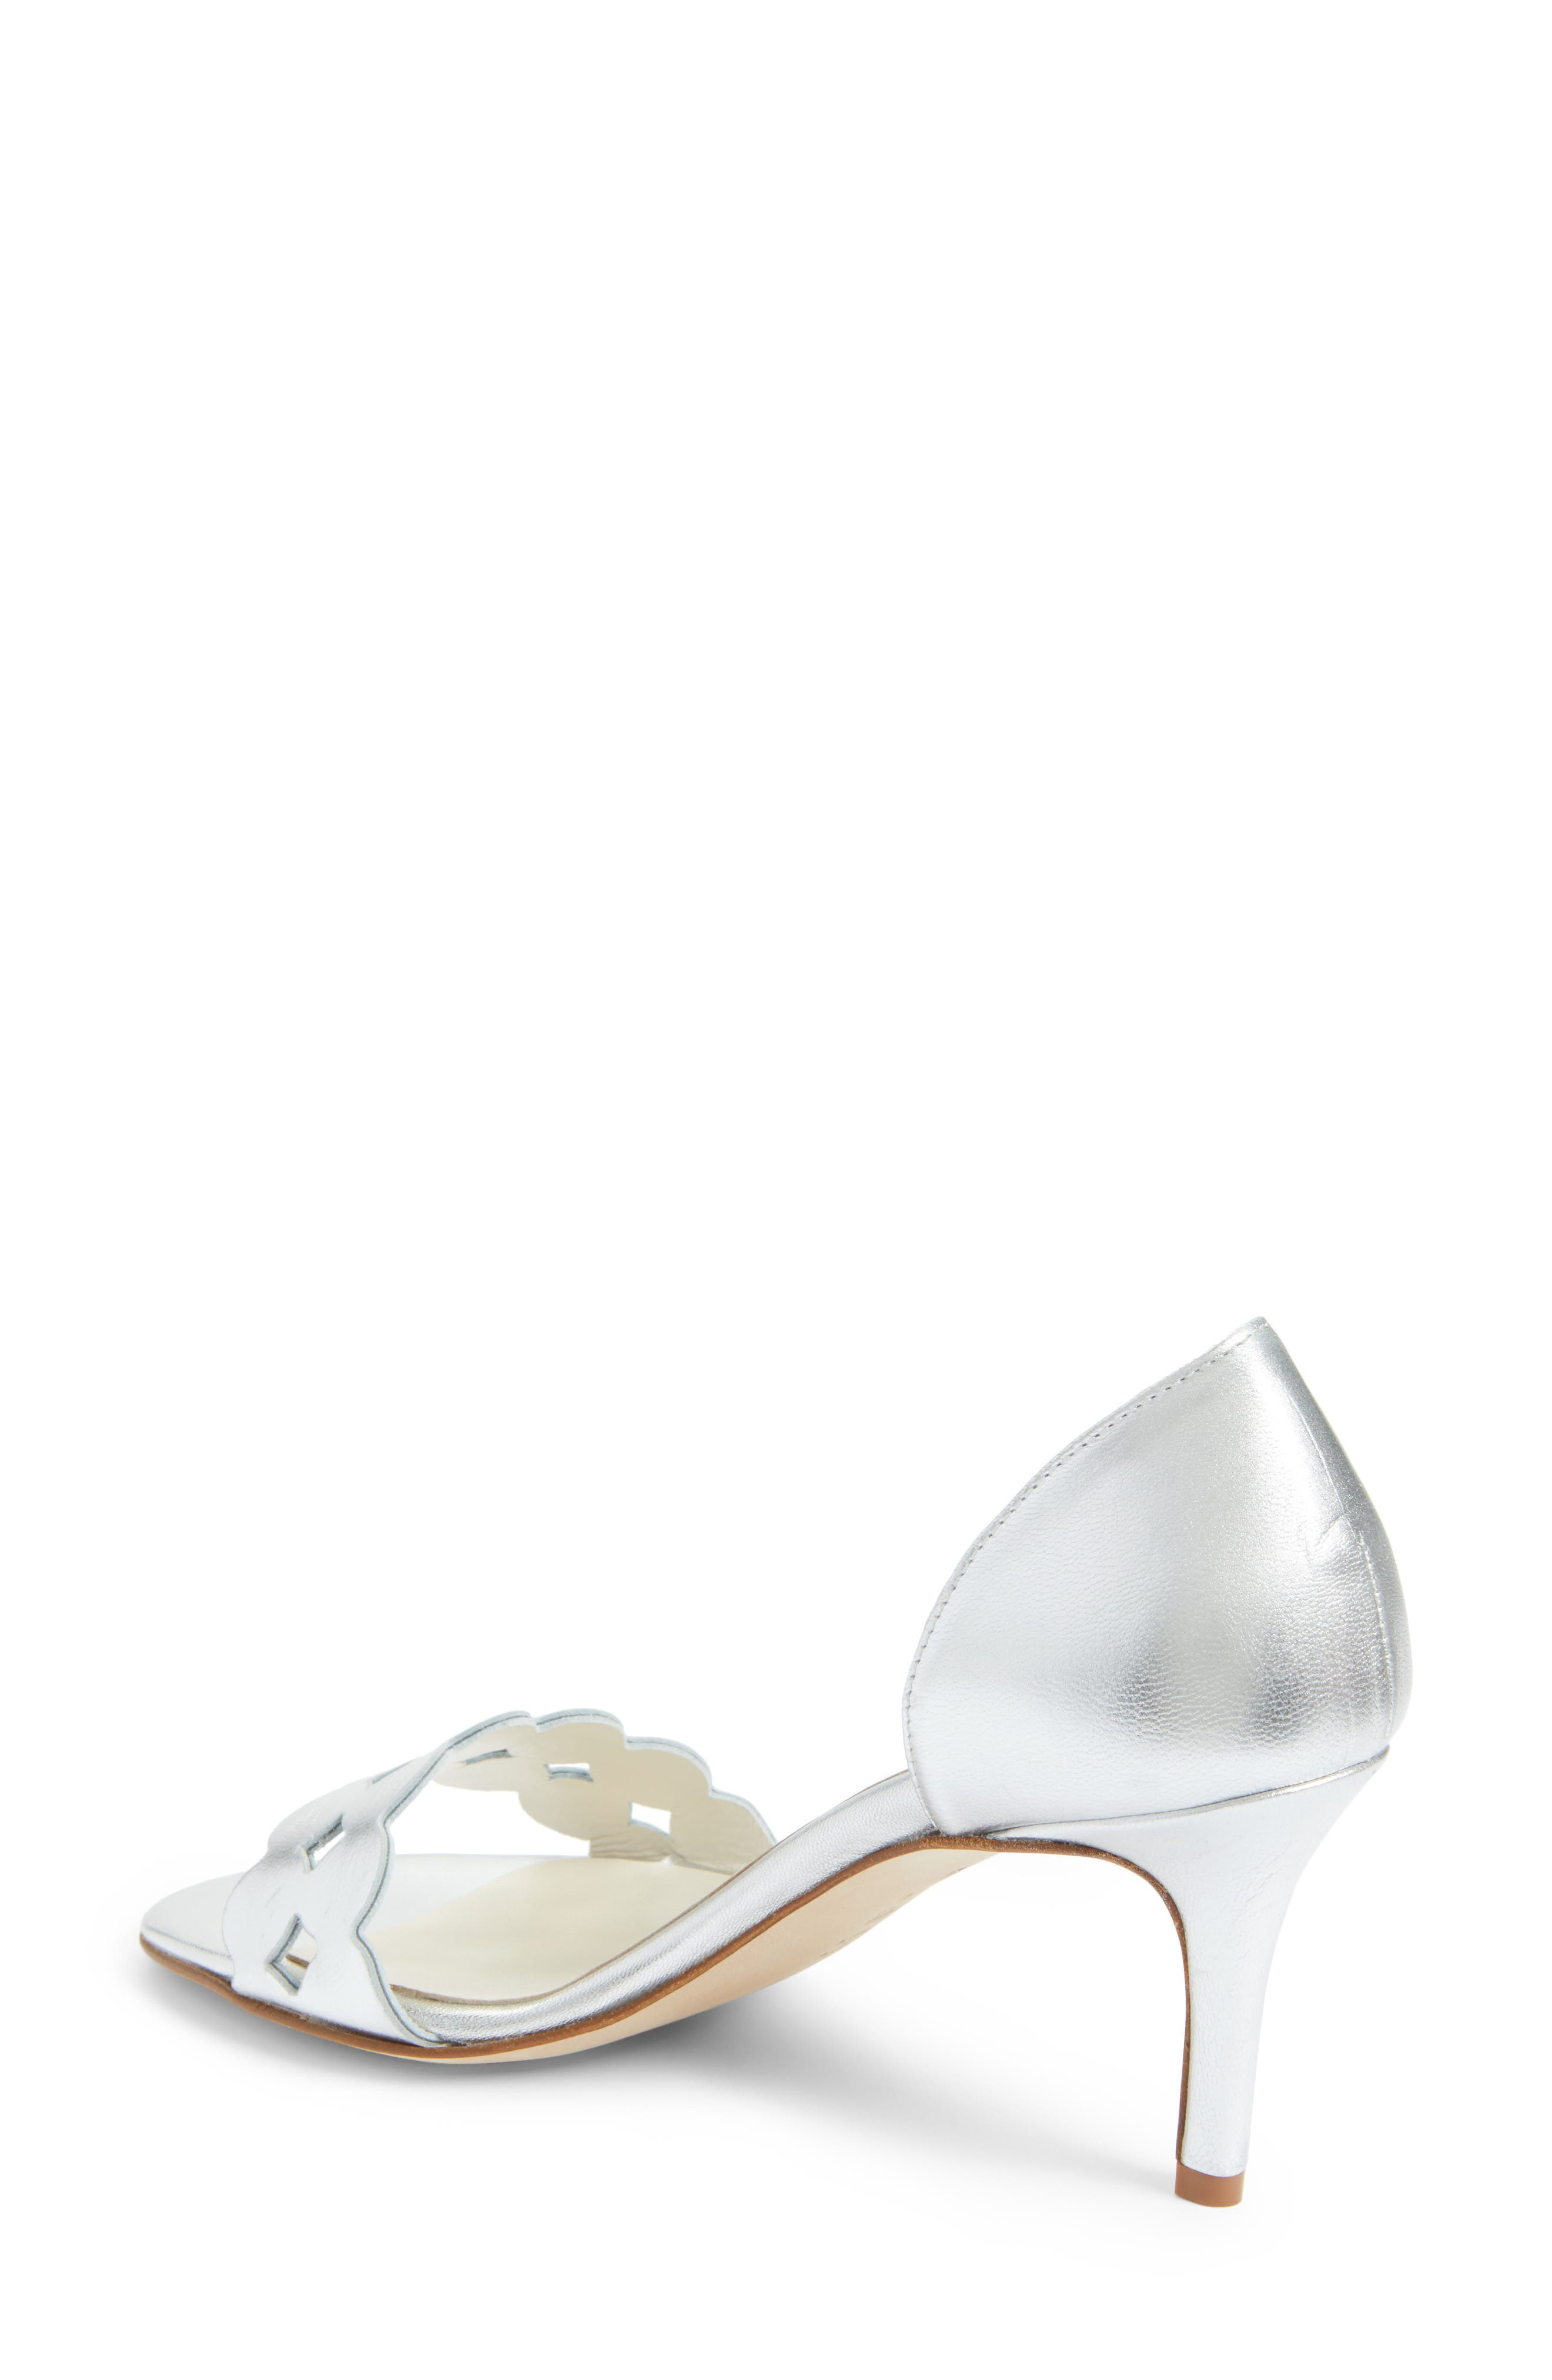 Catherine Cutout Sandal,                             Alternate thumbnail 2, color,                             SILVER METALLIC NAPPA